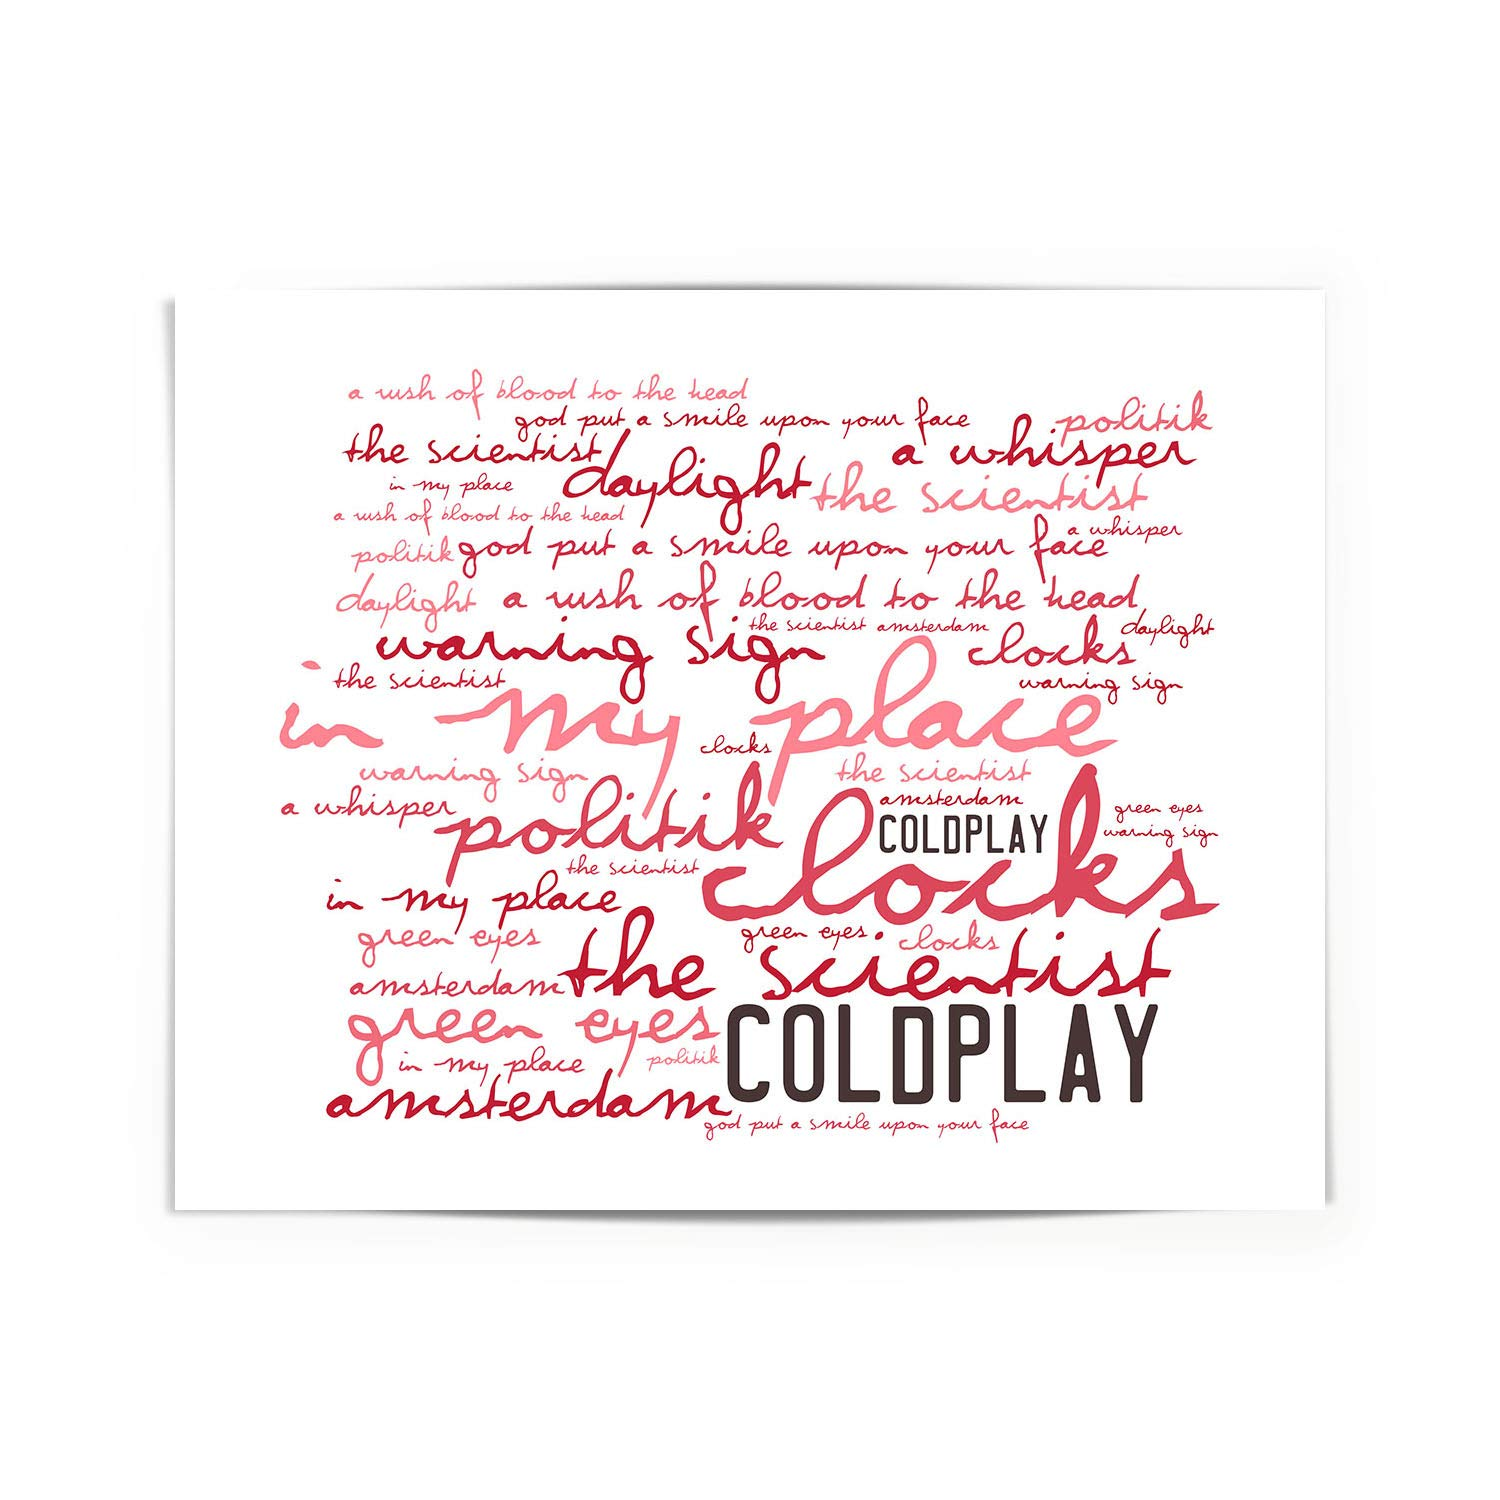 Coldplay Poster Print - A Rush of Blood to the Head - Letra firmada regalo arte cartel: Amazon.es: Hogar